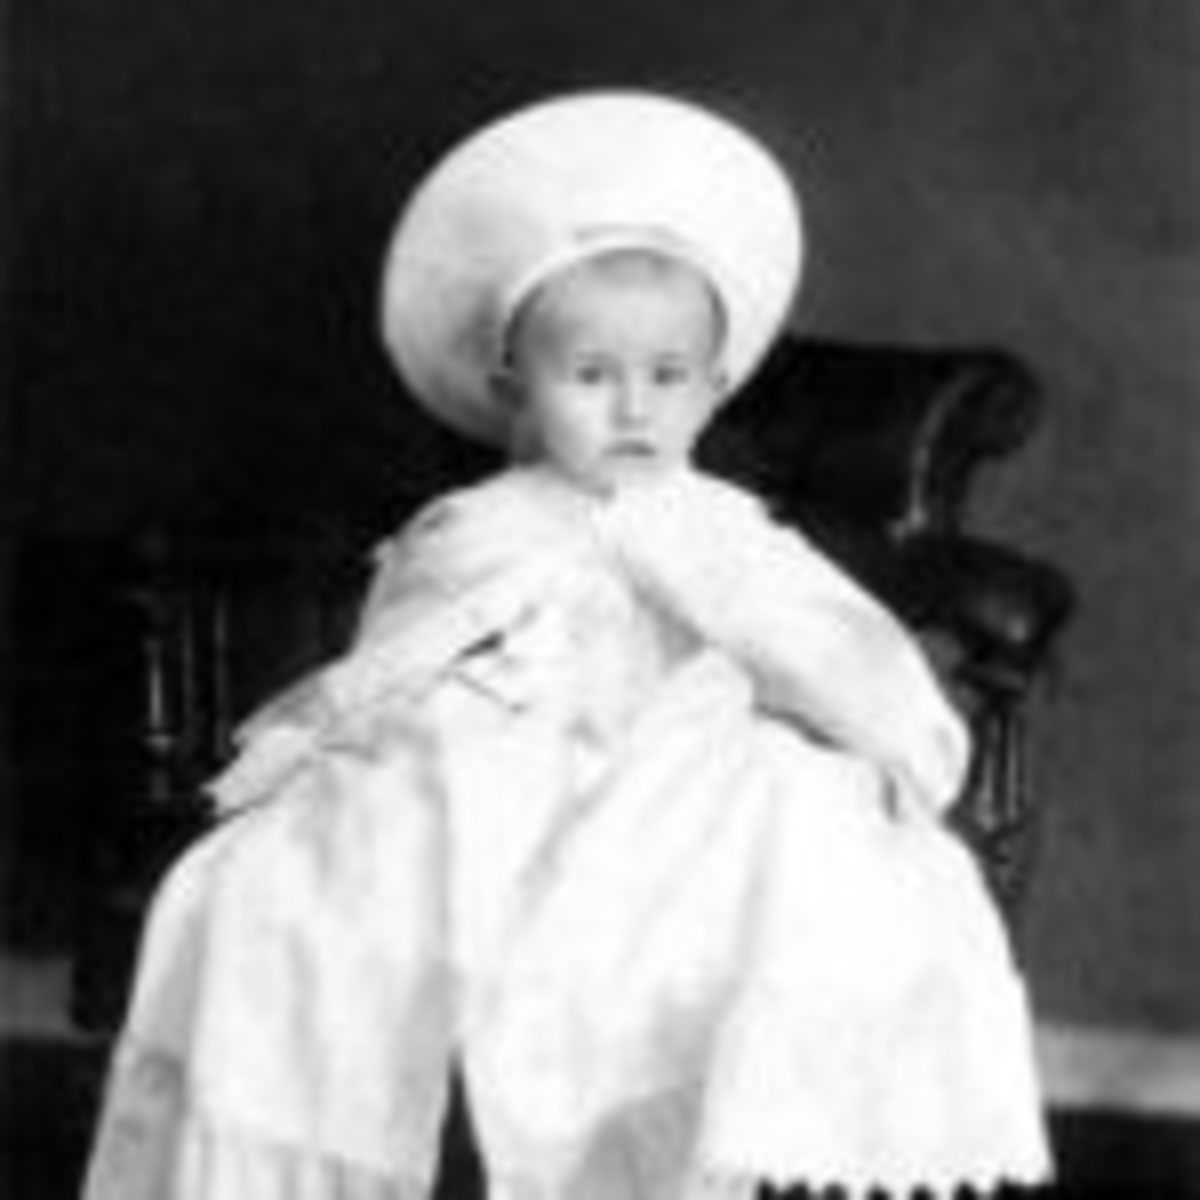 early photograph of unsmiling baby